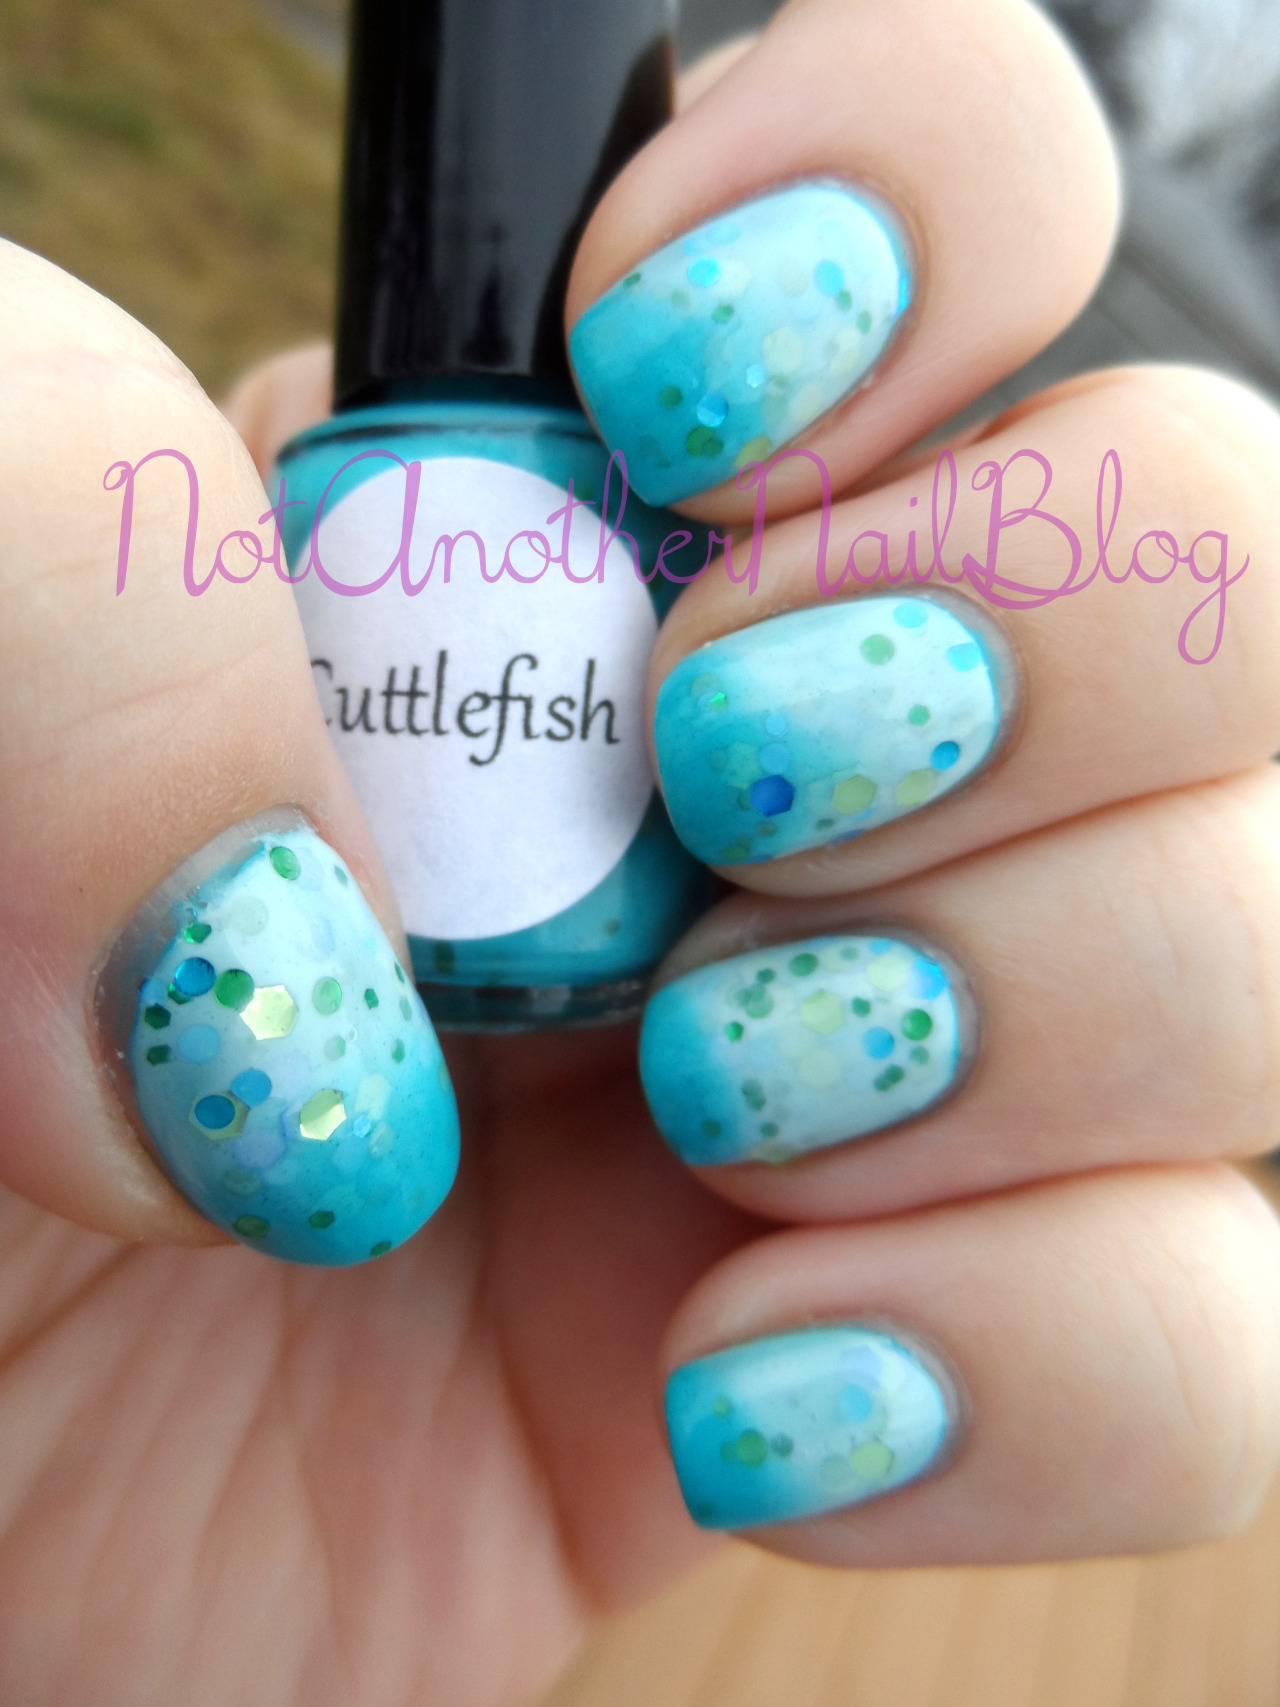 Two posts in one day? Whoo! Chels from Pretty & Polished (my absolute favorite indie polish) sent me a few bottles to try out, and Cuttlefish was one of them, which is so great, because I wanted to try this one as soon as I saw her promo pics of it. Cuttlefish is part of her color changing line of polishes, and when it's warm it turns white, but cold turns it a lovely teal. Now if you look closely, you'll notice it has glitter bits in it! Large gold hex, small green round and hex glitters along with medium blue hex and round glitters. Now be aware that because of the color changing pigment that these are thicker than usual, so a bit of thinner and you'll be right as rain. With that in mind, the application on this was a bit tricky, I did dab a bit to get the glitters where I wanted them, but as soon as I added a bit of thinner everything worked much better. Also, the other thing I thought was neat, was that no matter how thick a topcoat, it'll still change colors, and boy will it change colors. Here is a picture of the polish right after a dunk in cold water:  I wanted to show everyone how fast the color change was, so I made a quick video; never mind that I didn't say a word in it- I have no idea what to say on camera. ^___^   Like Pretty & Polished here and buy them here   Disclosure- Products were provided to me by the manufacturer for my opinion and honest review. See here for more information.